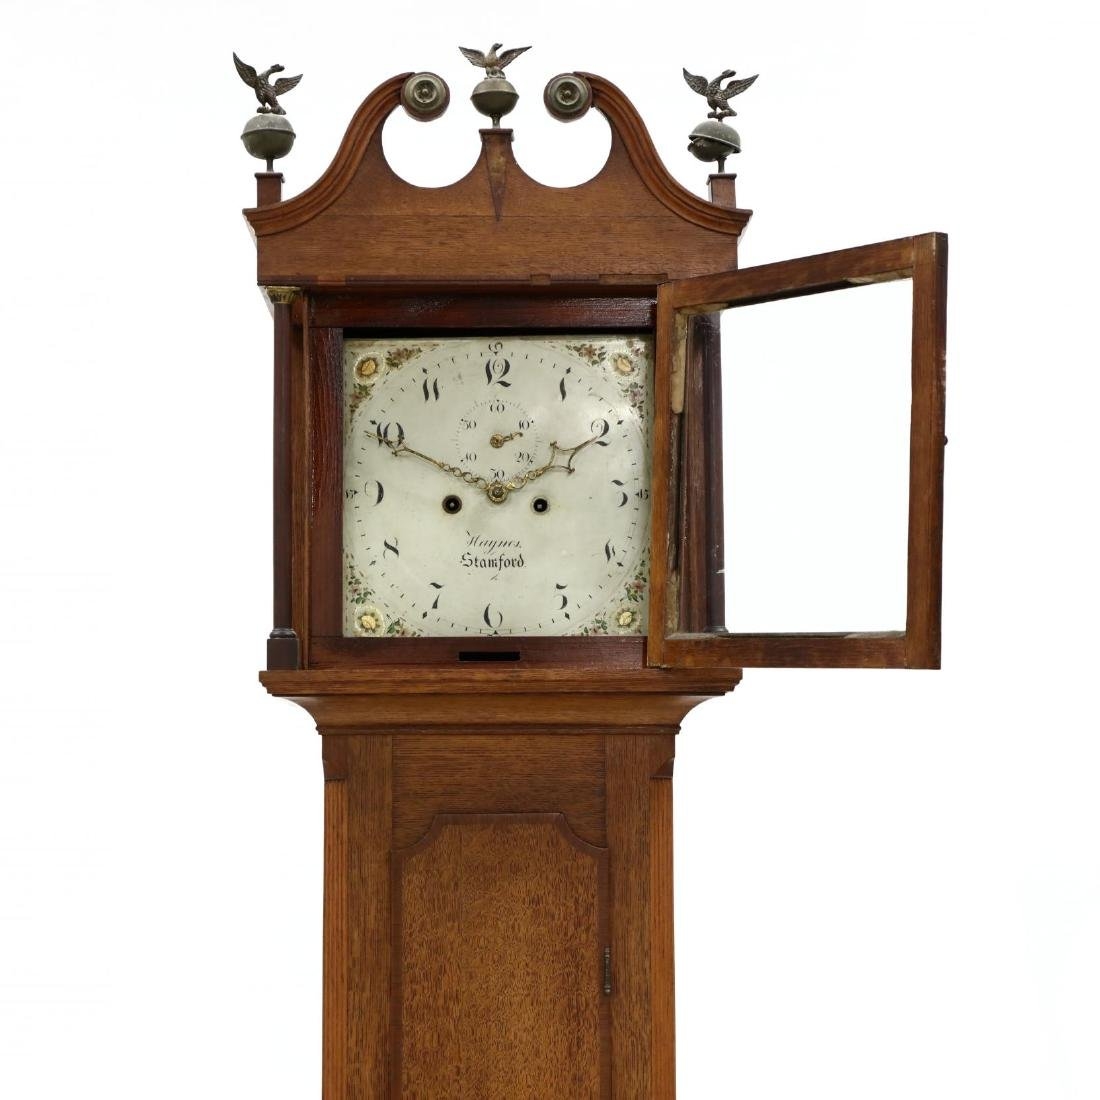 English Inlaid Oak Tall Case Clock, Haynes, Stamford - 2